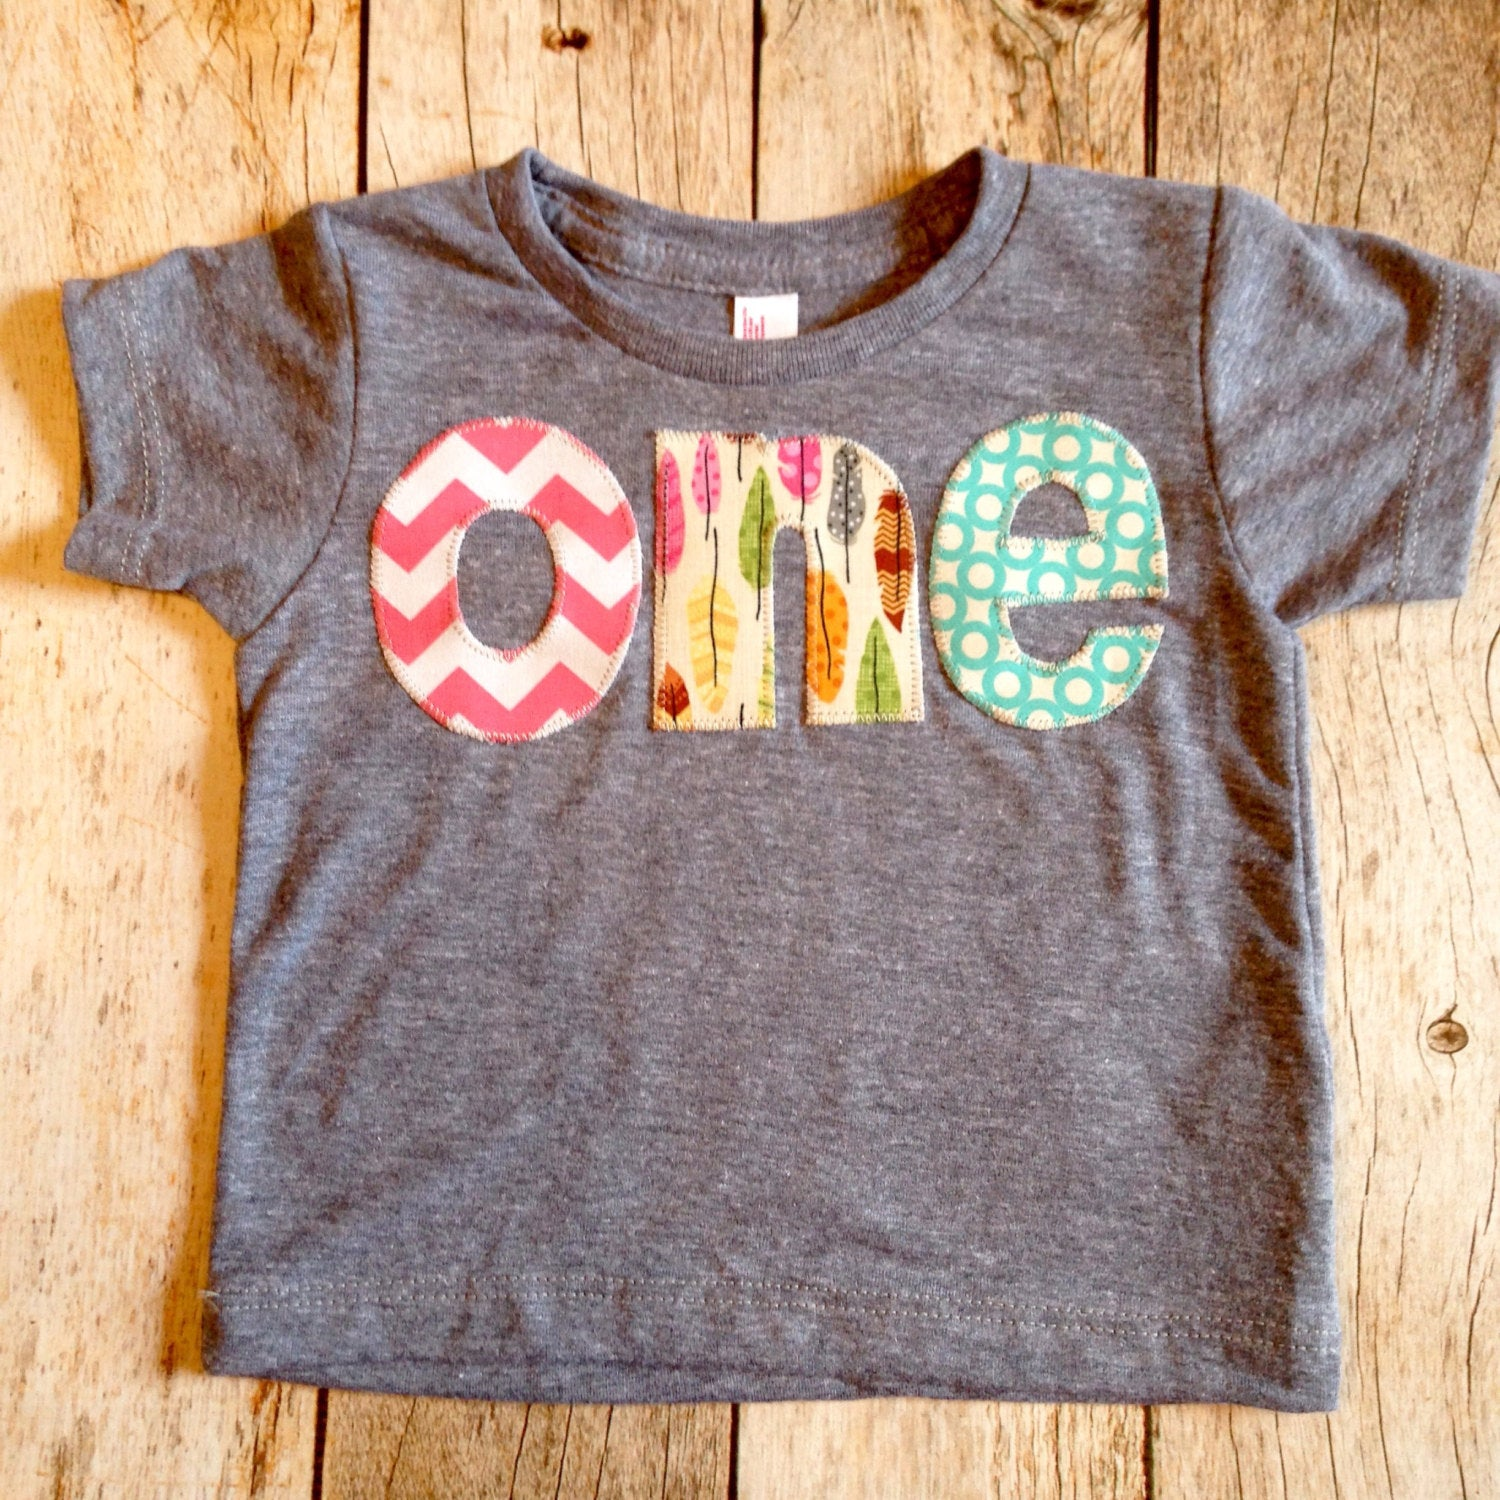 Fall one birthday shirt girls 1st birthday pink chevron tribal feathers aqua grey arrows tent camp ideas theme 1 year old bear fox bird owl